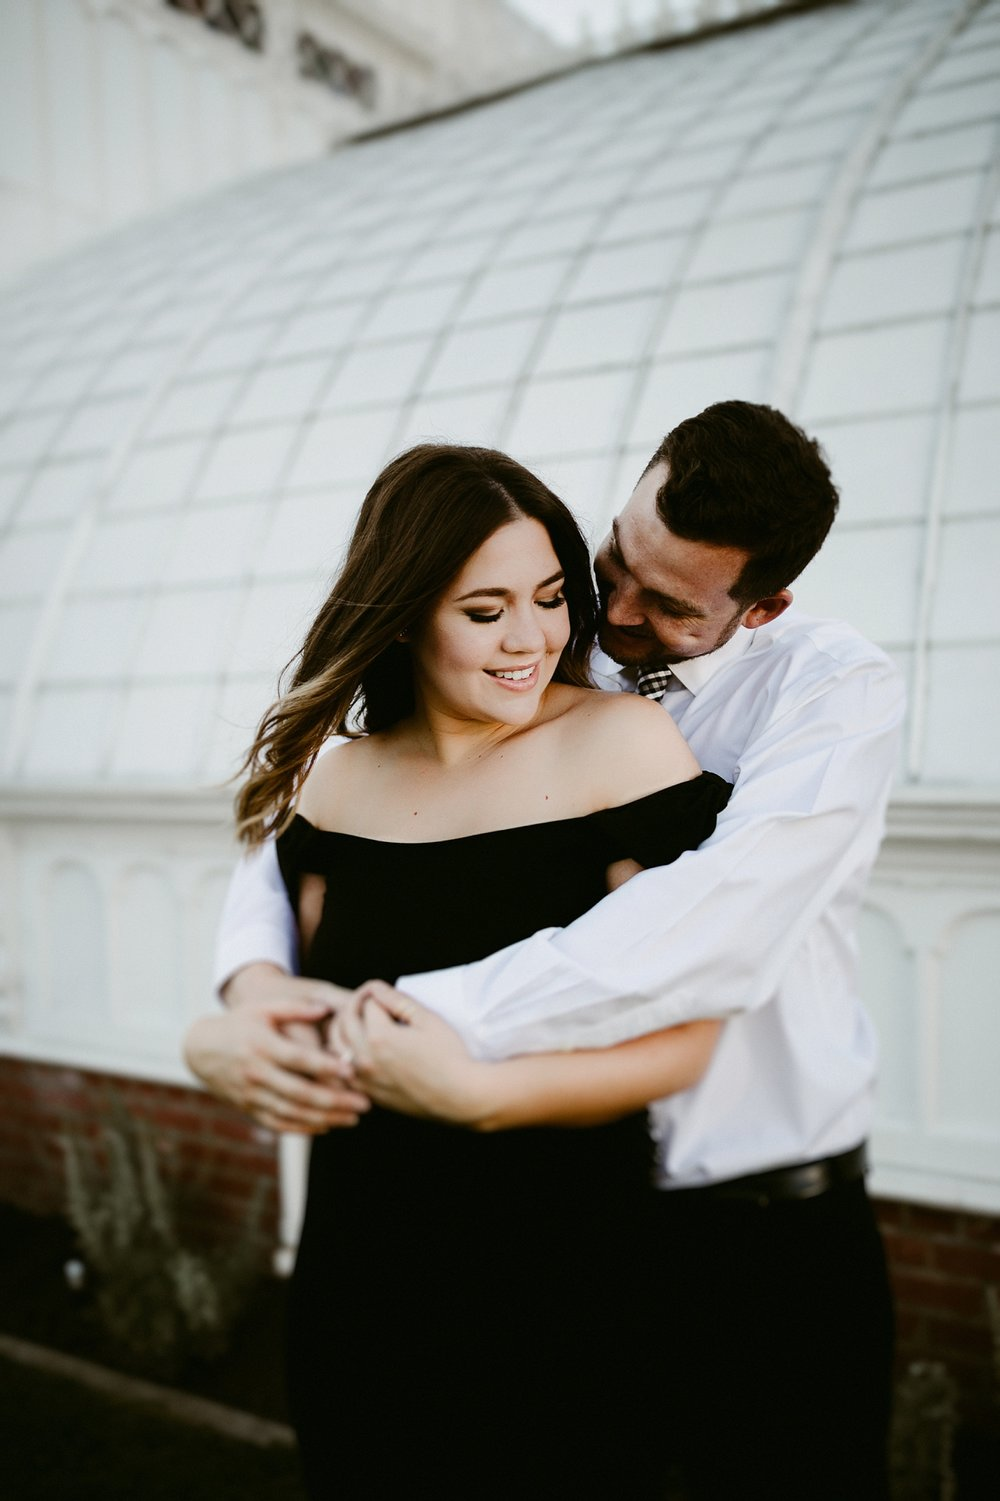 conservatory of flowers engagement session